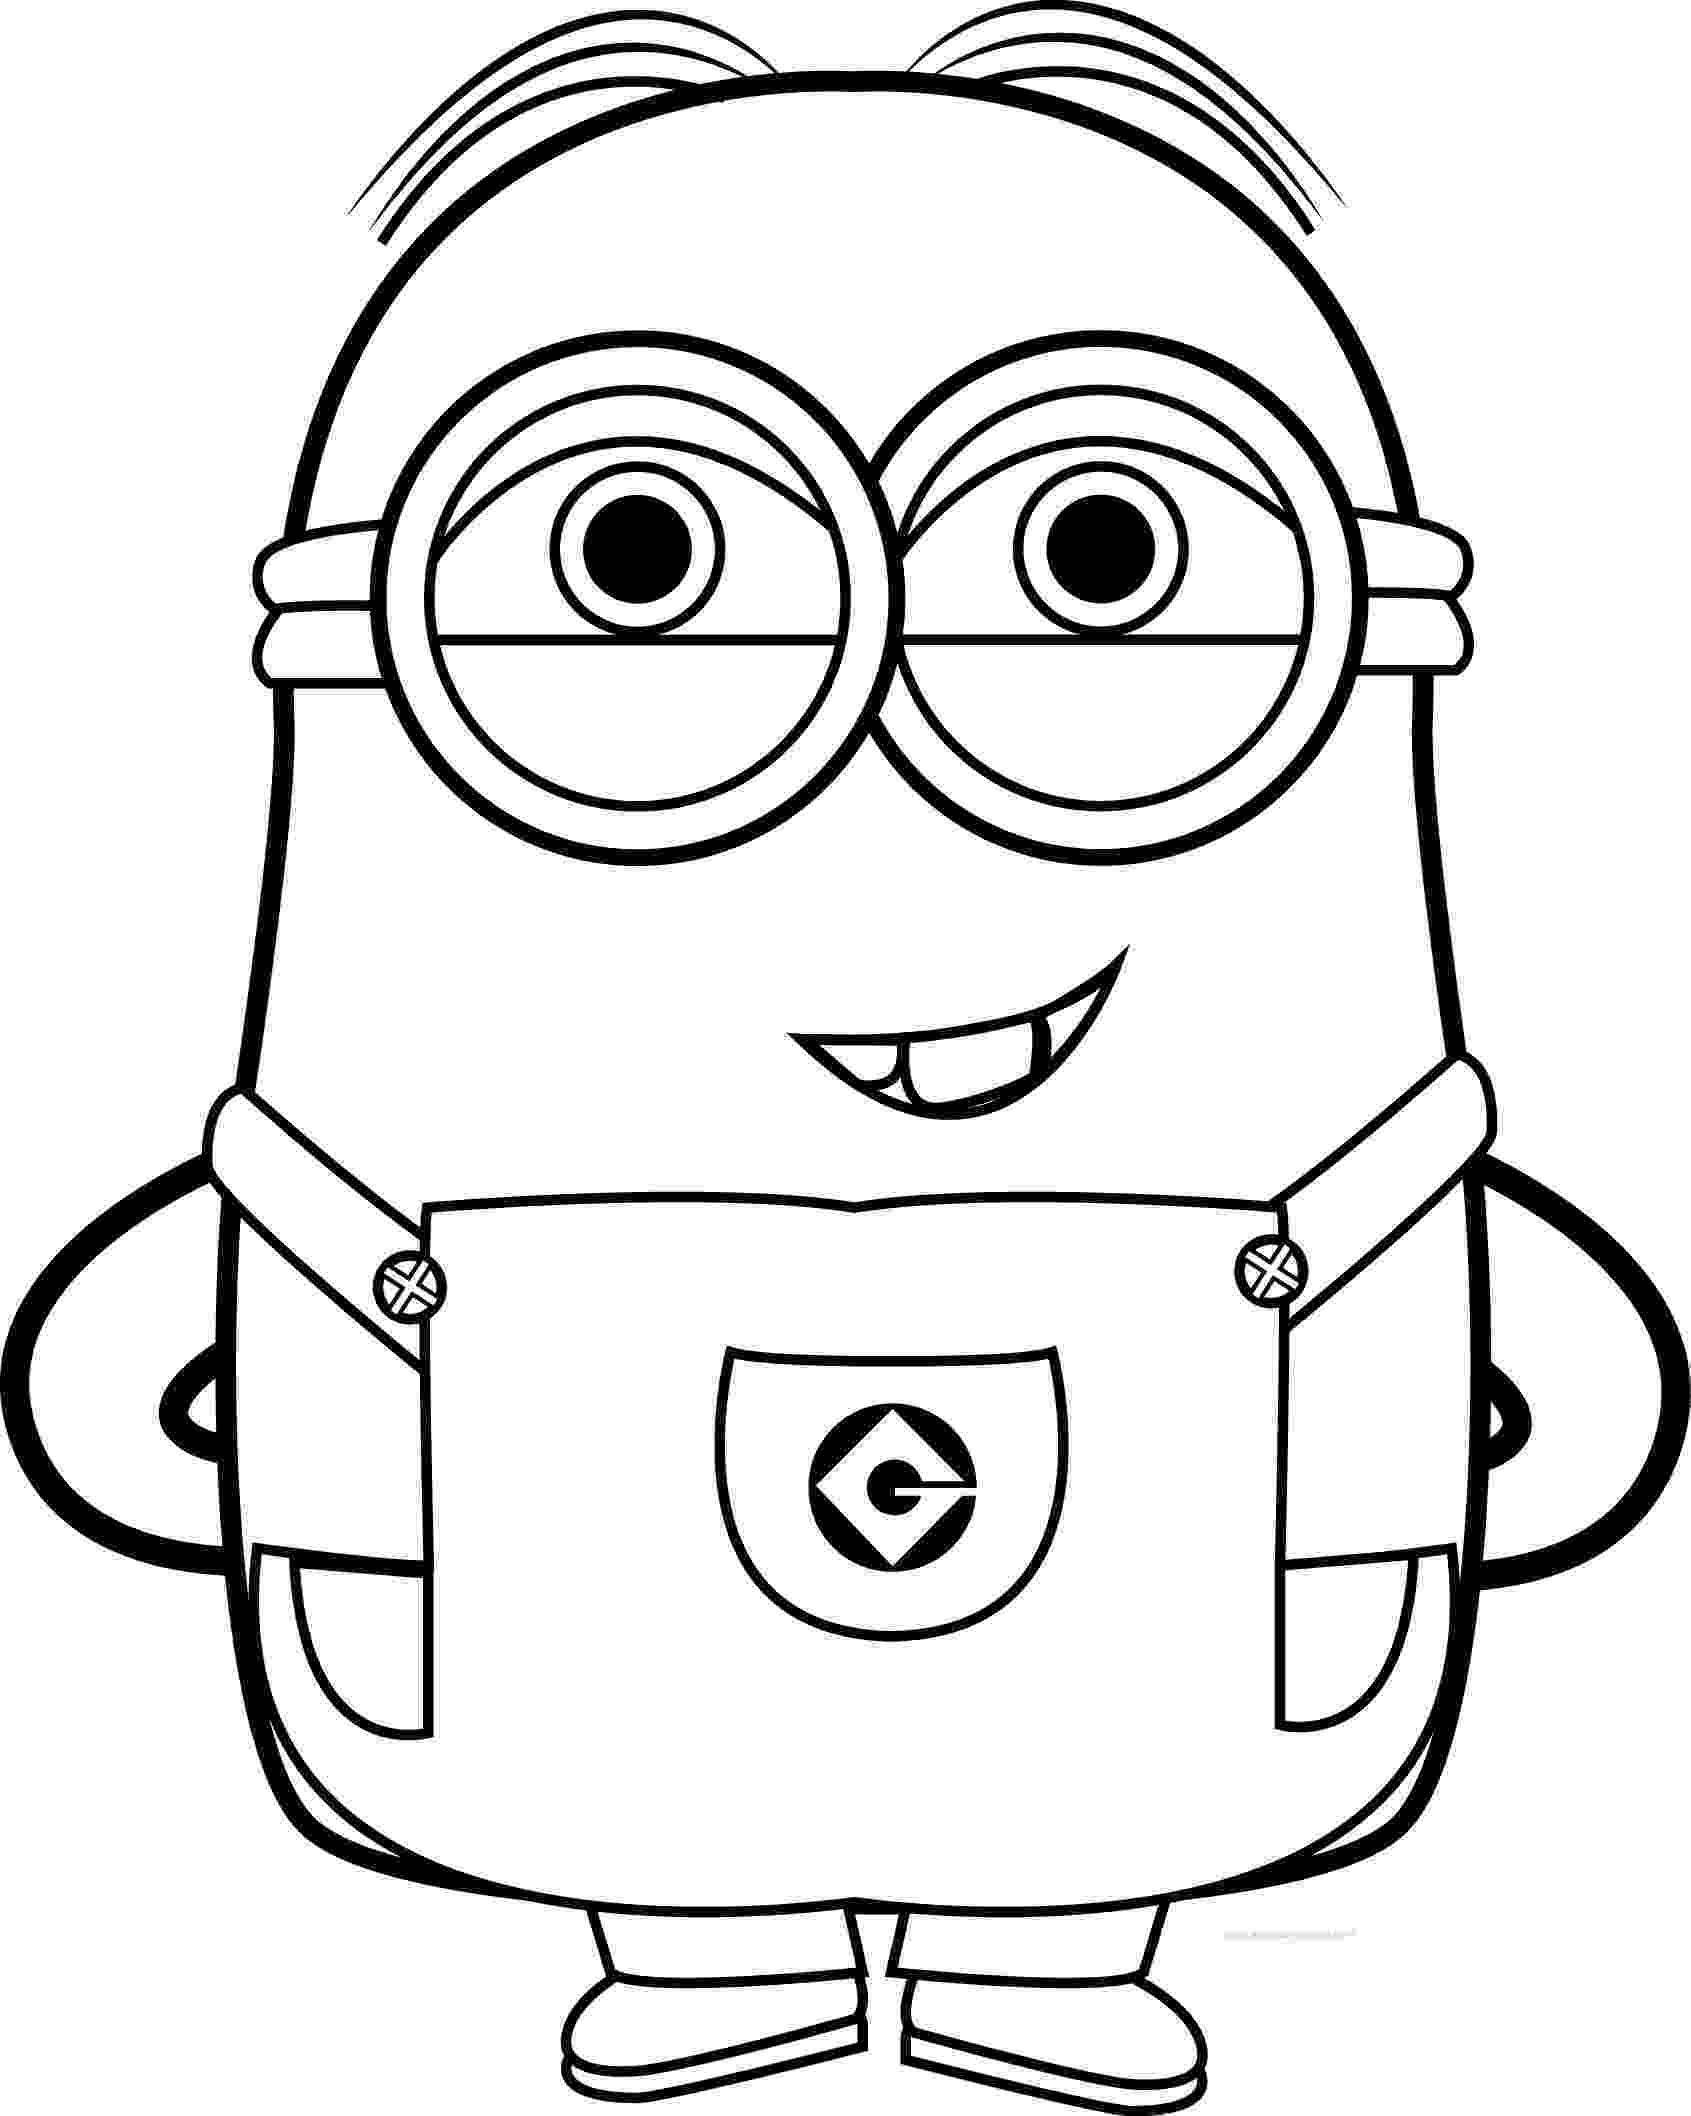 minions black and white best funny minions quotes and picture coloring page minions black white and